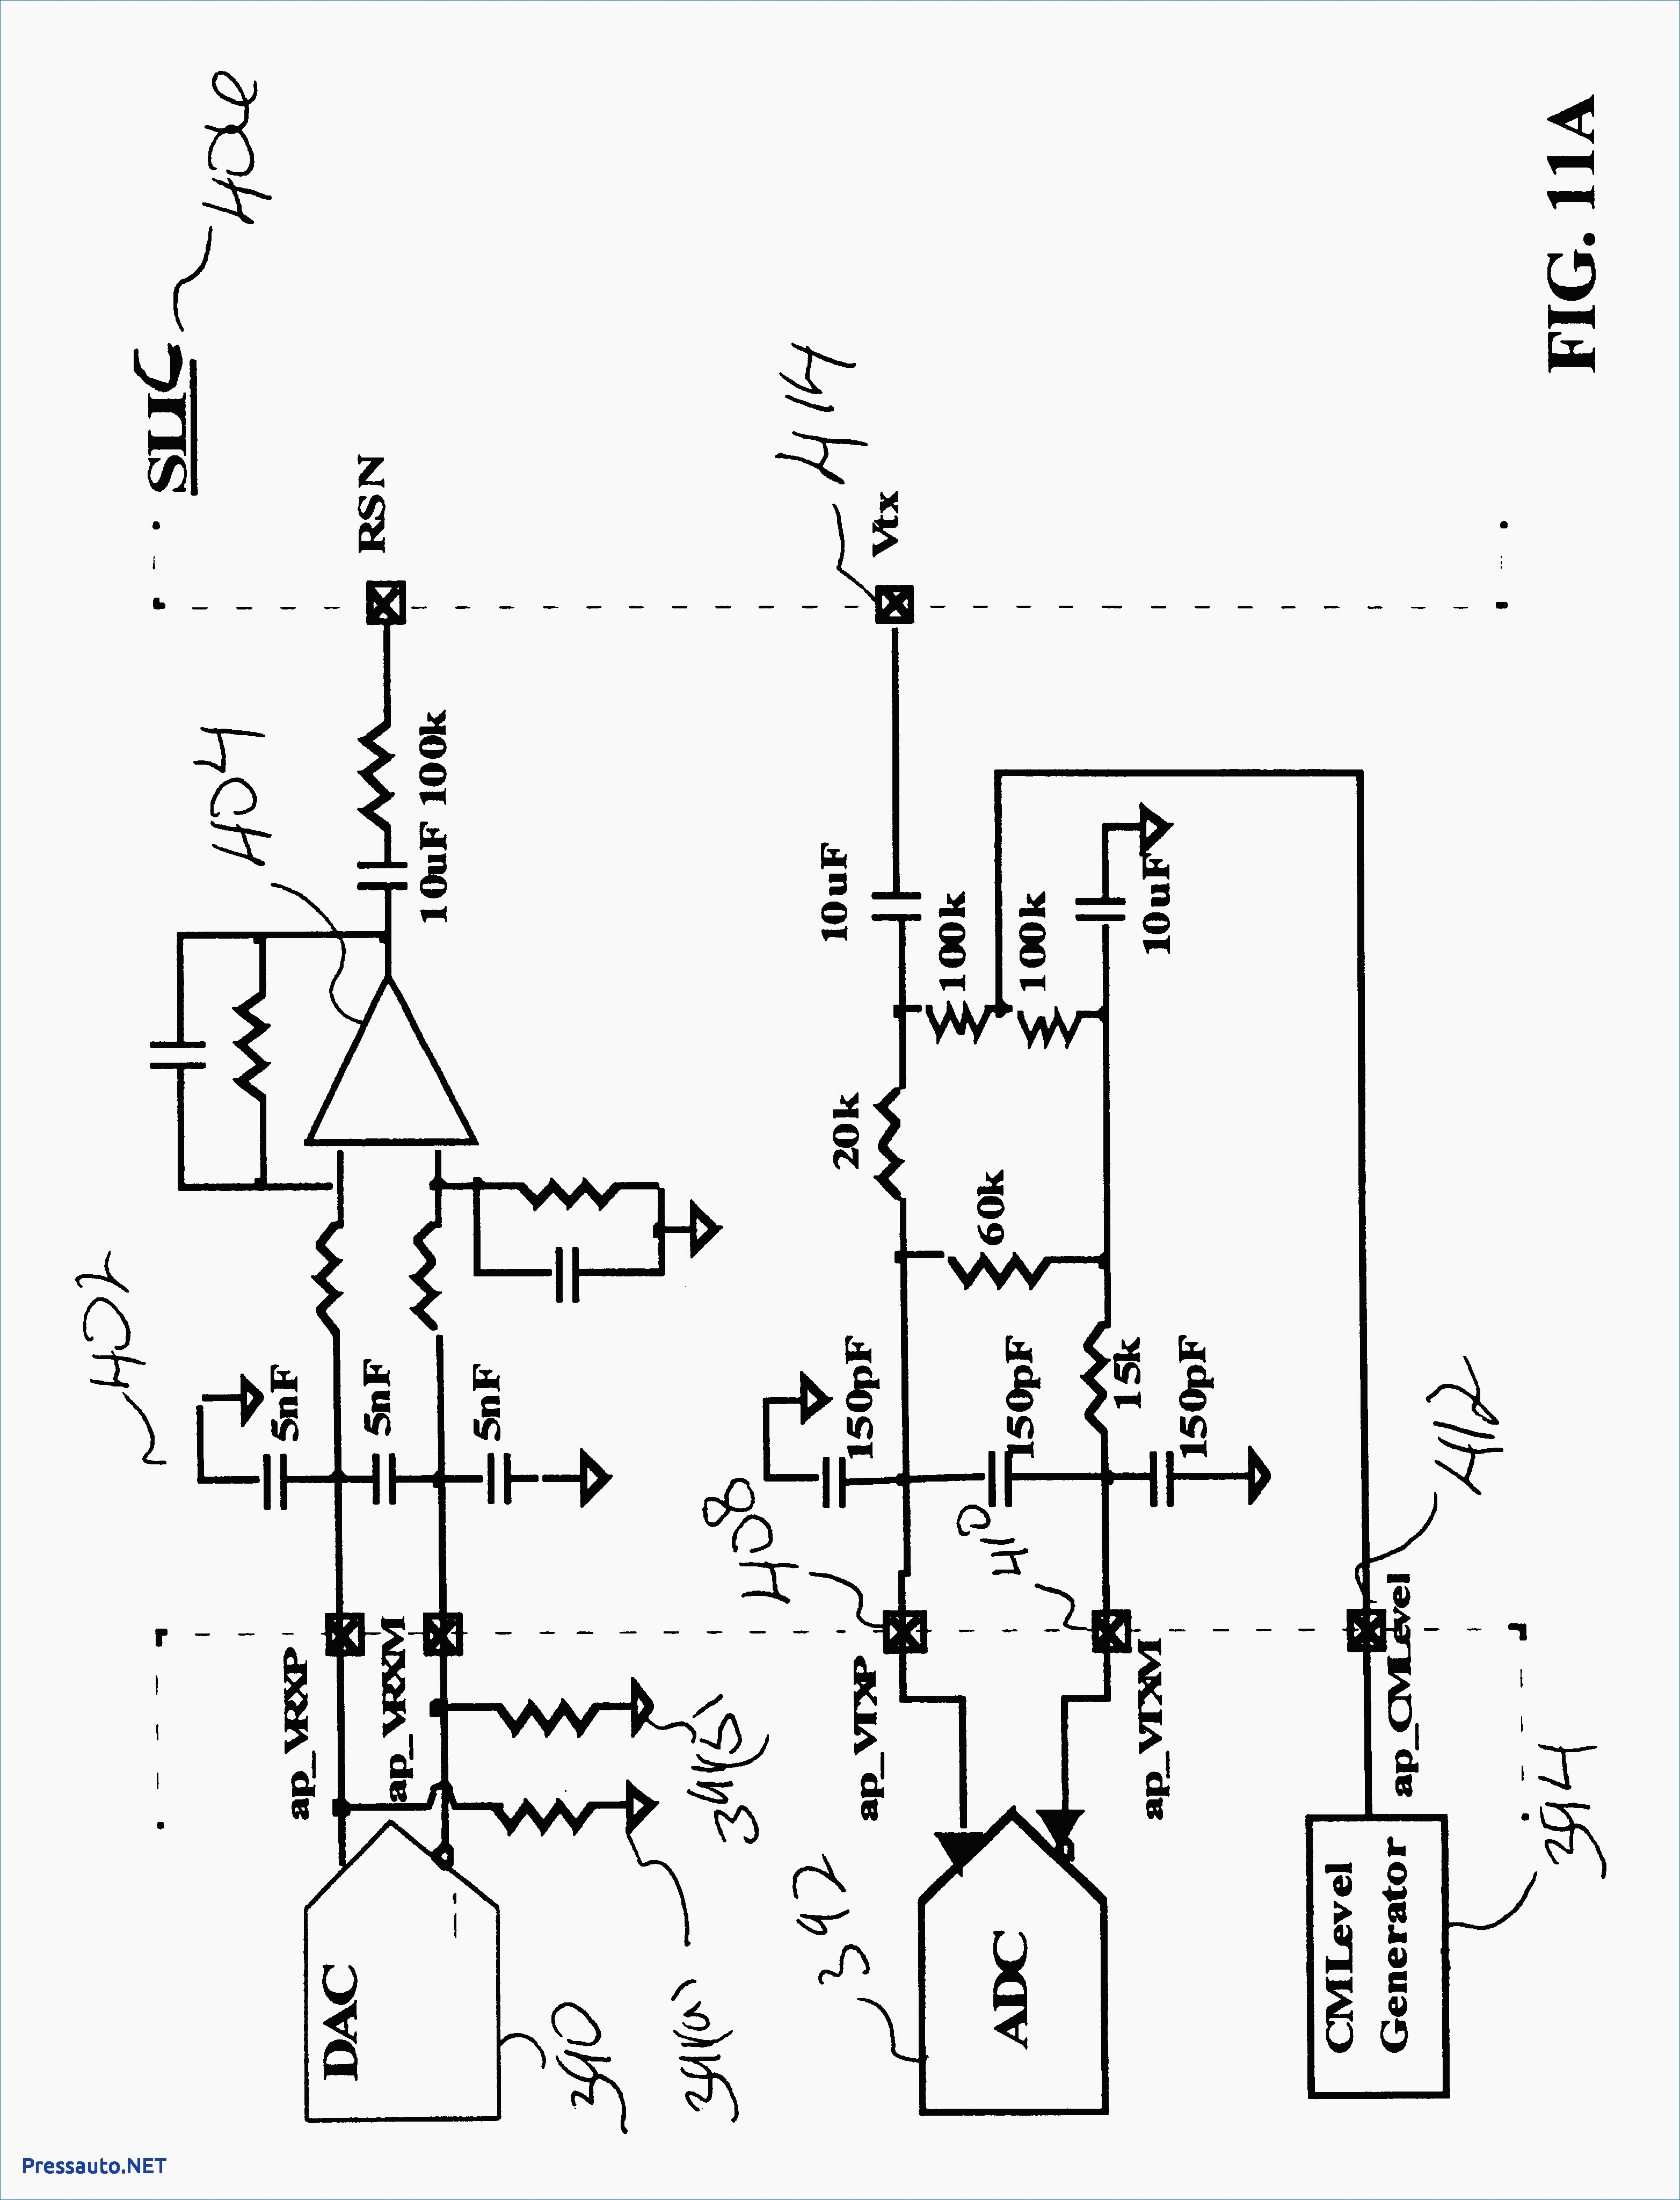 acme transformer t 1 81051 wiring diagram Download-acme transformer t 1 wiring diagram electrical rh metroroomph Buck Boost Transformer Connection Diagram Power Transformer Wiring Diagram 16-d